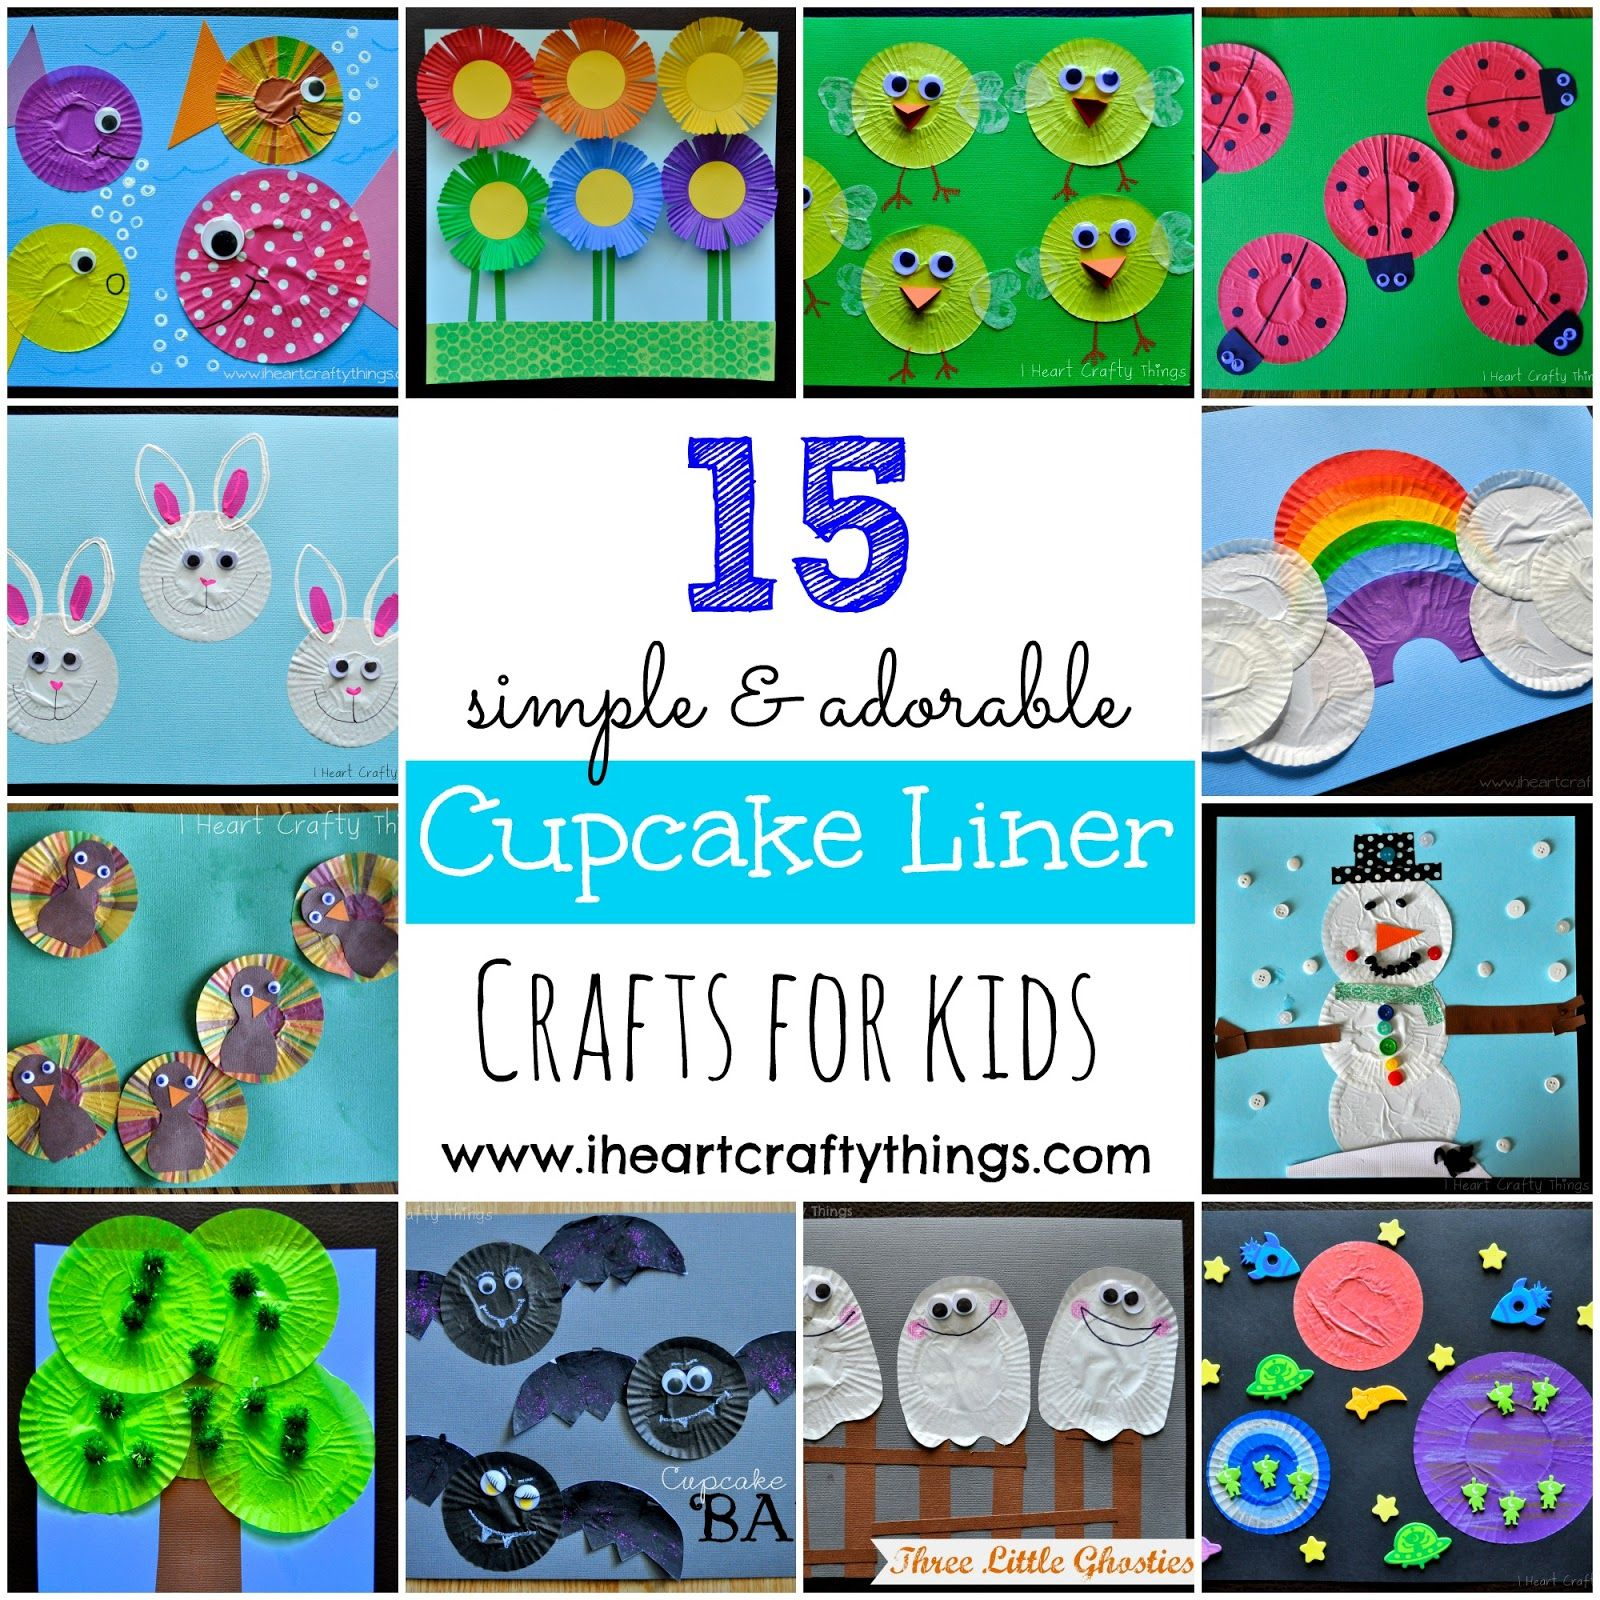 15 Cupcake Liner Crafts for Kids from I Heart Crafty Things